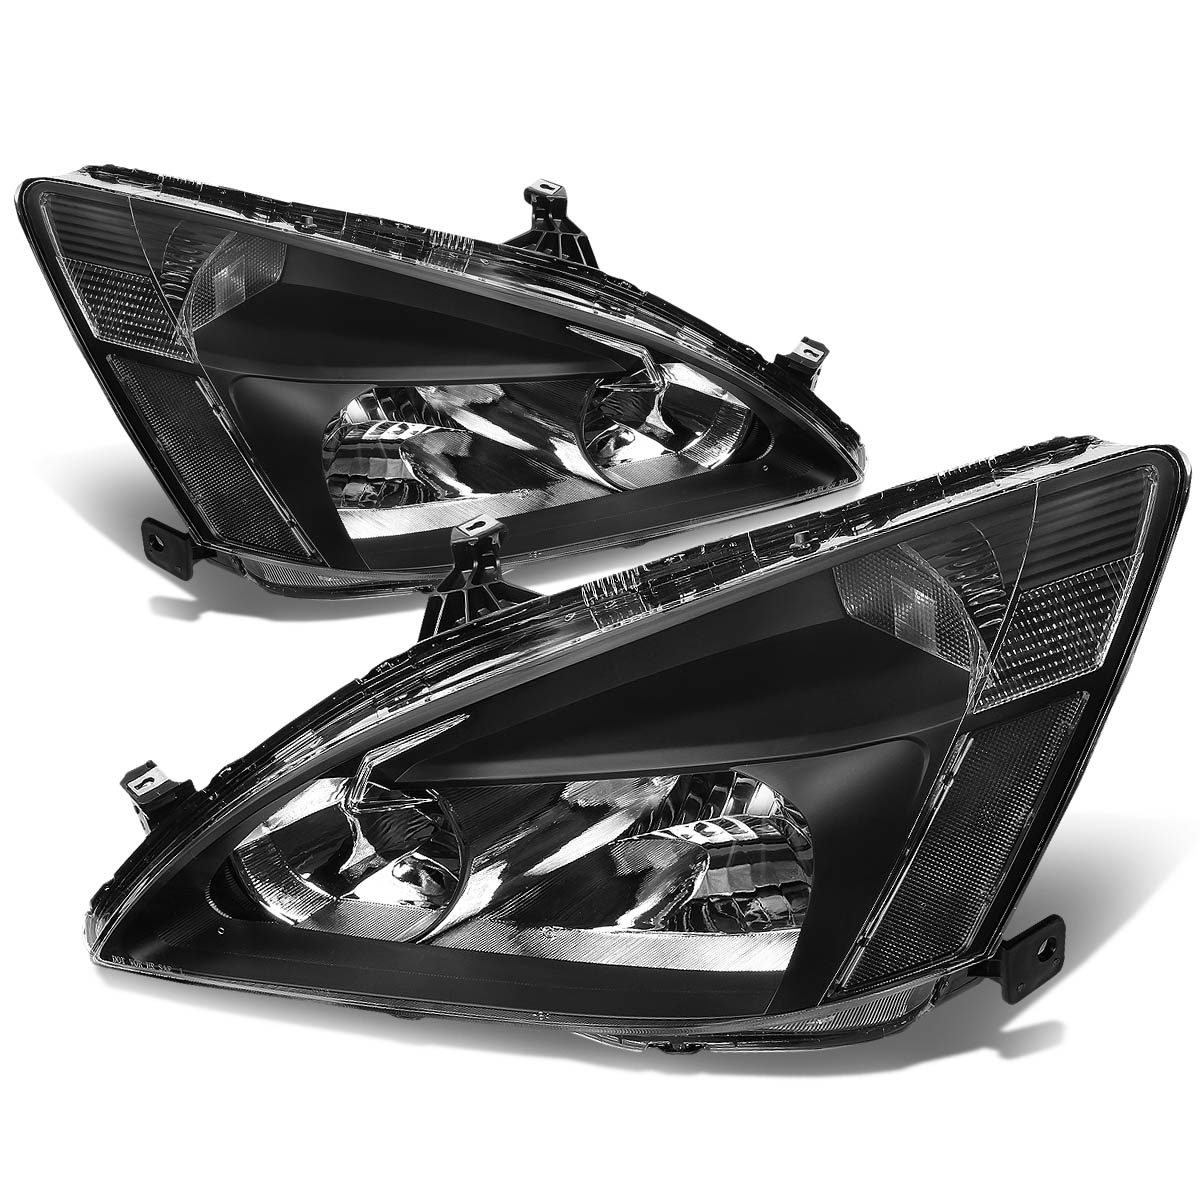 For 03-07 Honda Accord Replacement HeadLight Lamp Assembly (Black Housing) - 7th Gen UC1 04 05 06